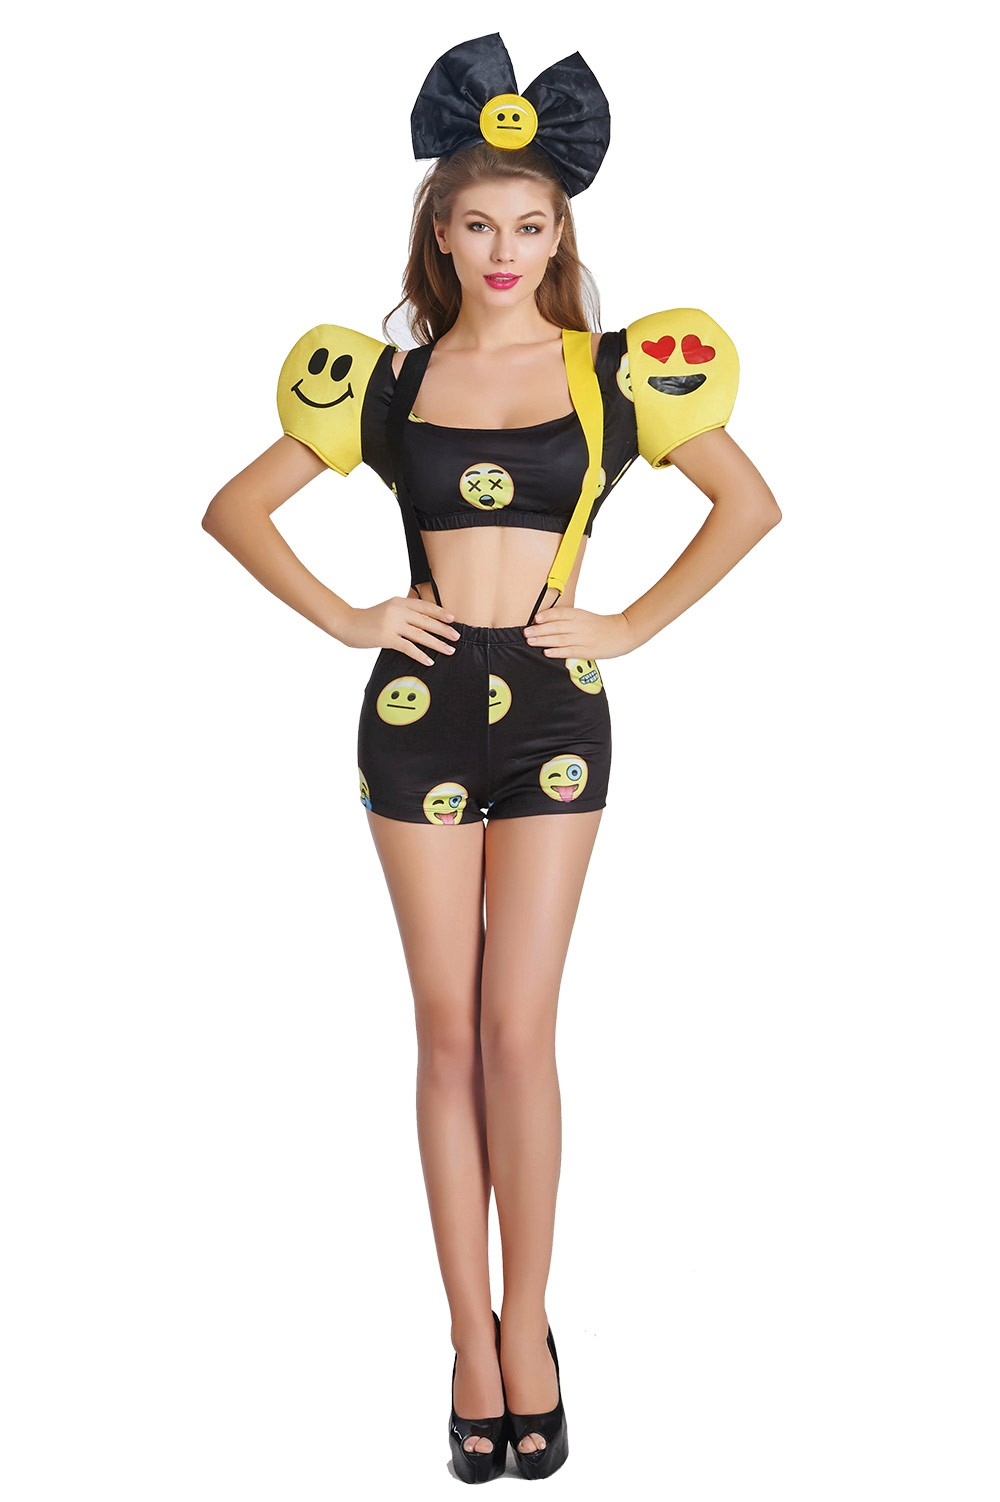 Ladies Happy Face Emoji Dress Halloween Party Fancy Dress Costume Outfit